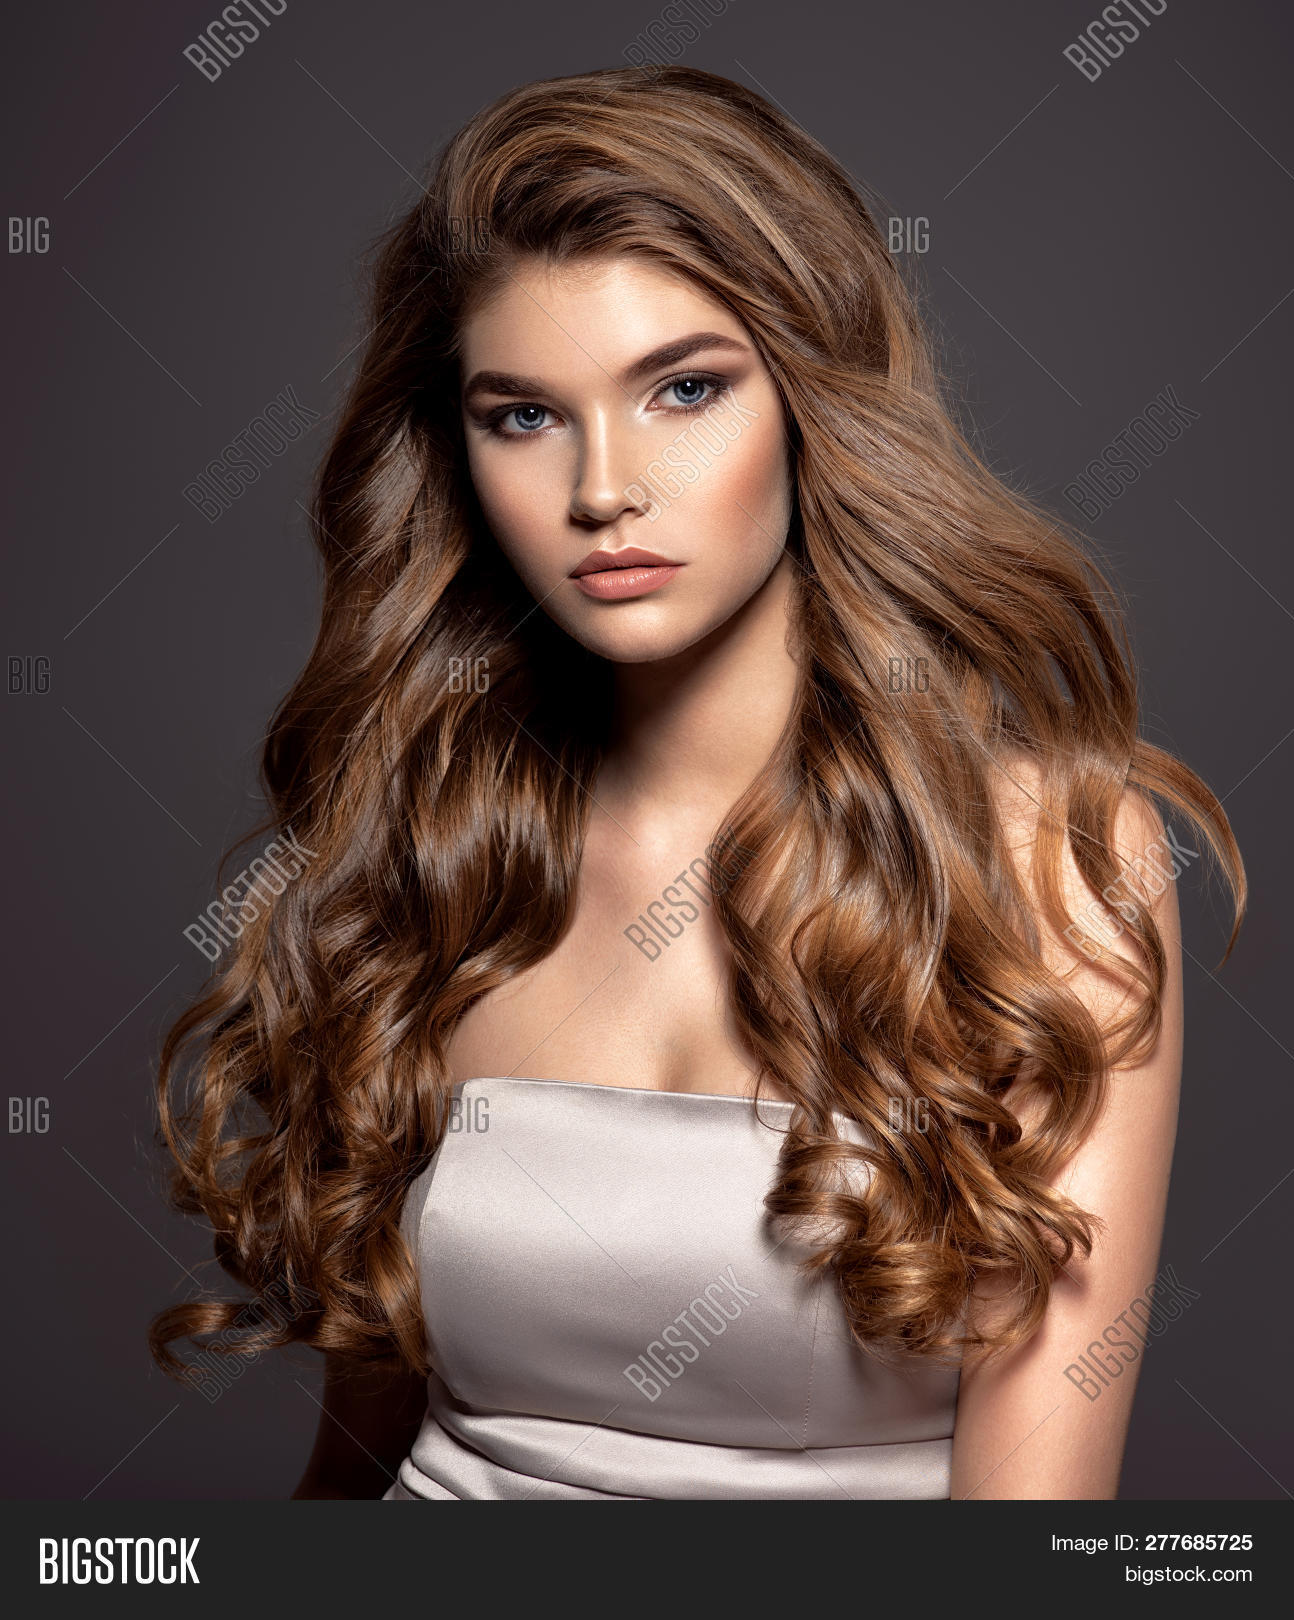 Young Brown Haired Image Photo Free Trial Bigstock